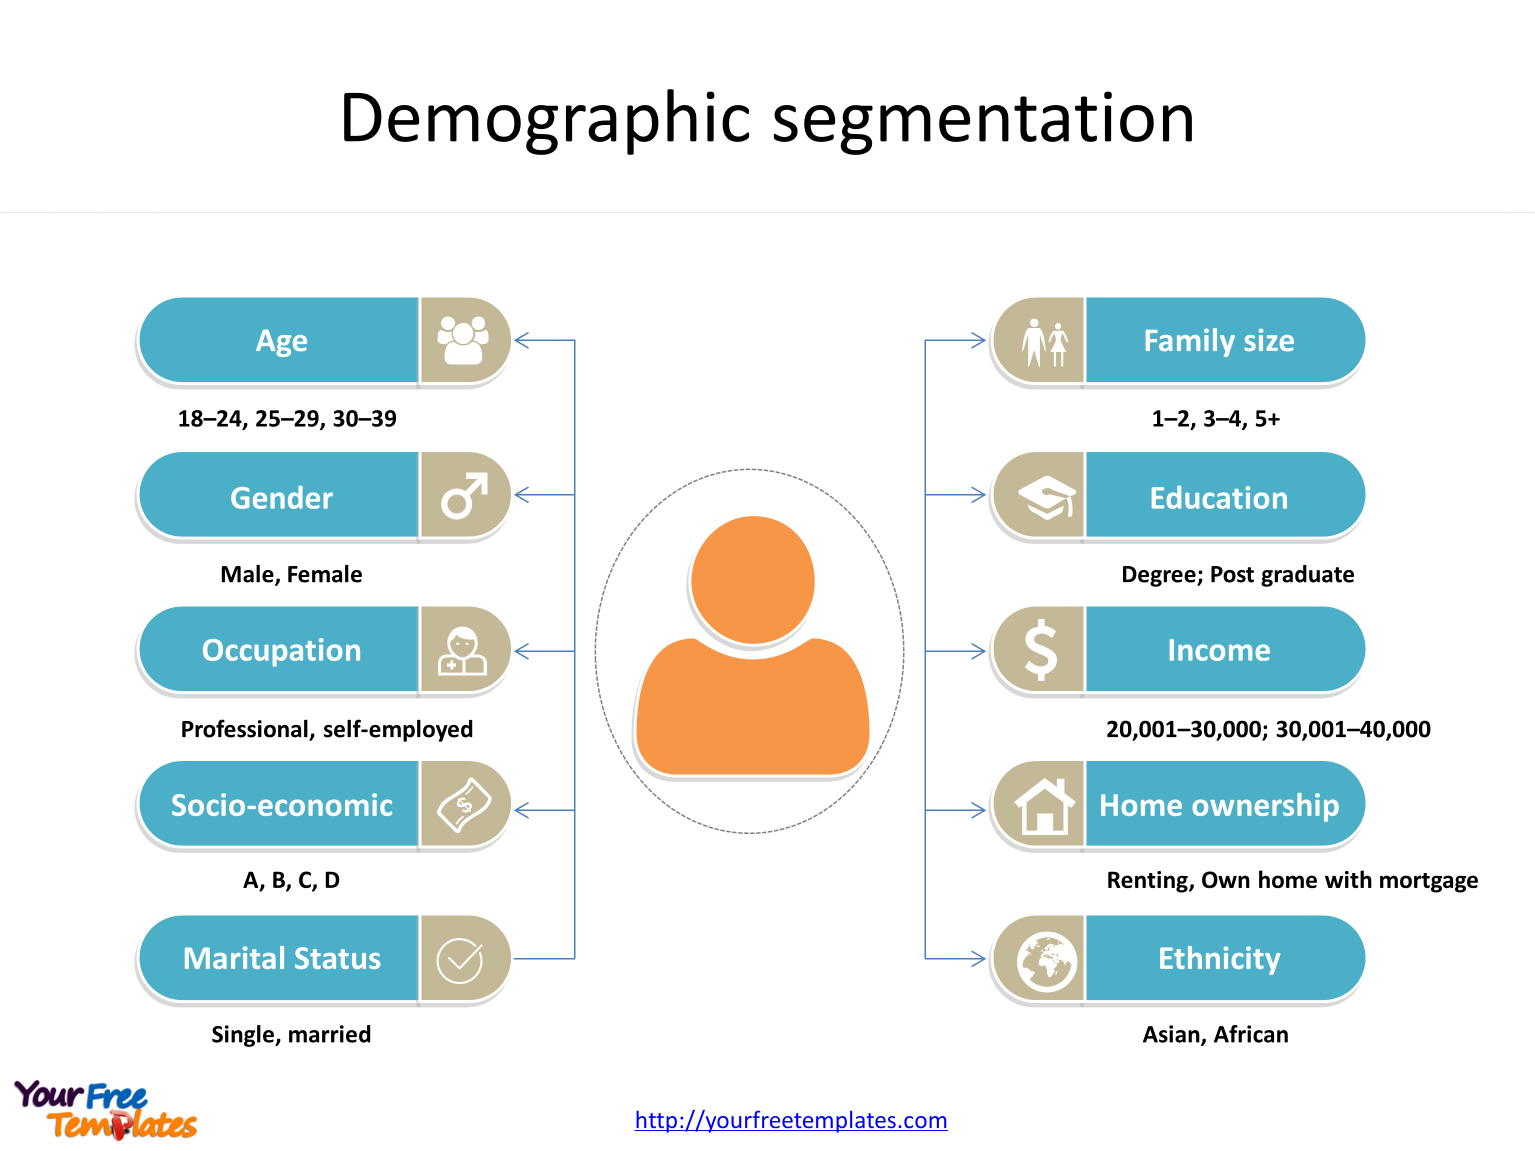 Market segmentation template of Demographic segmentation